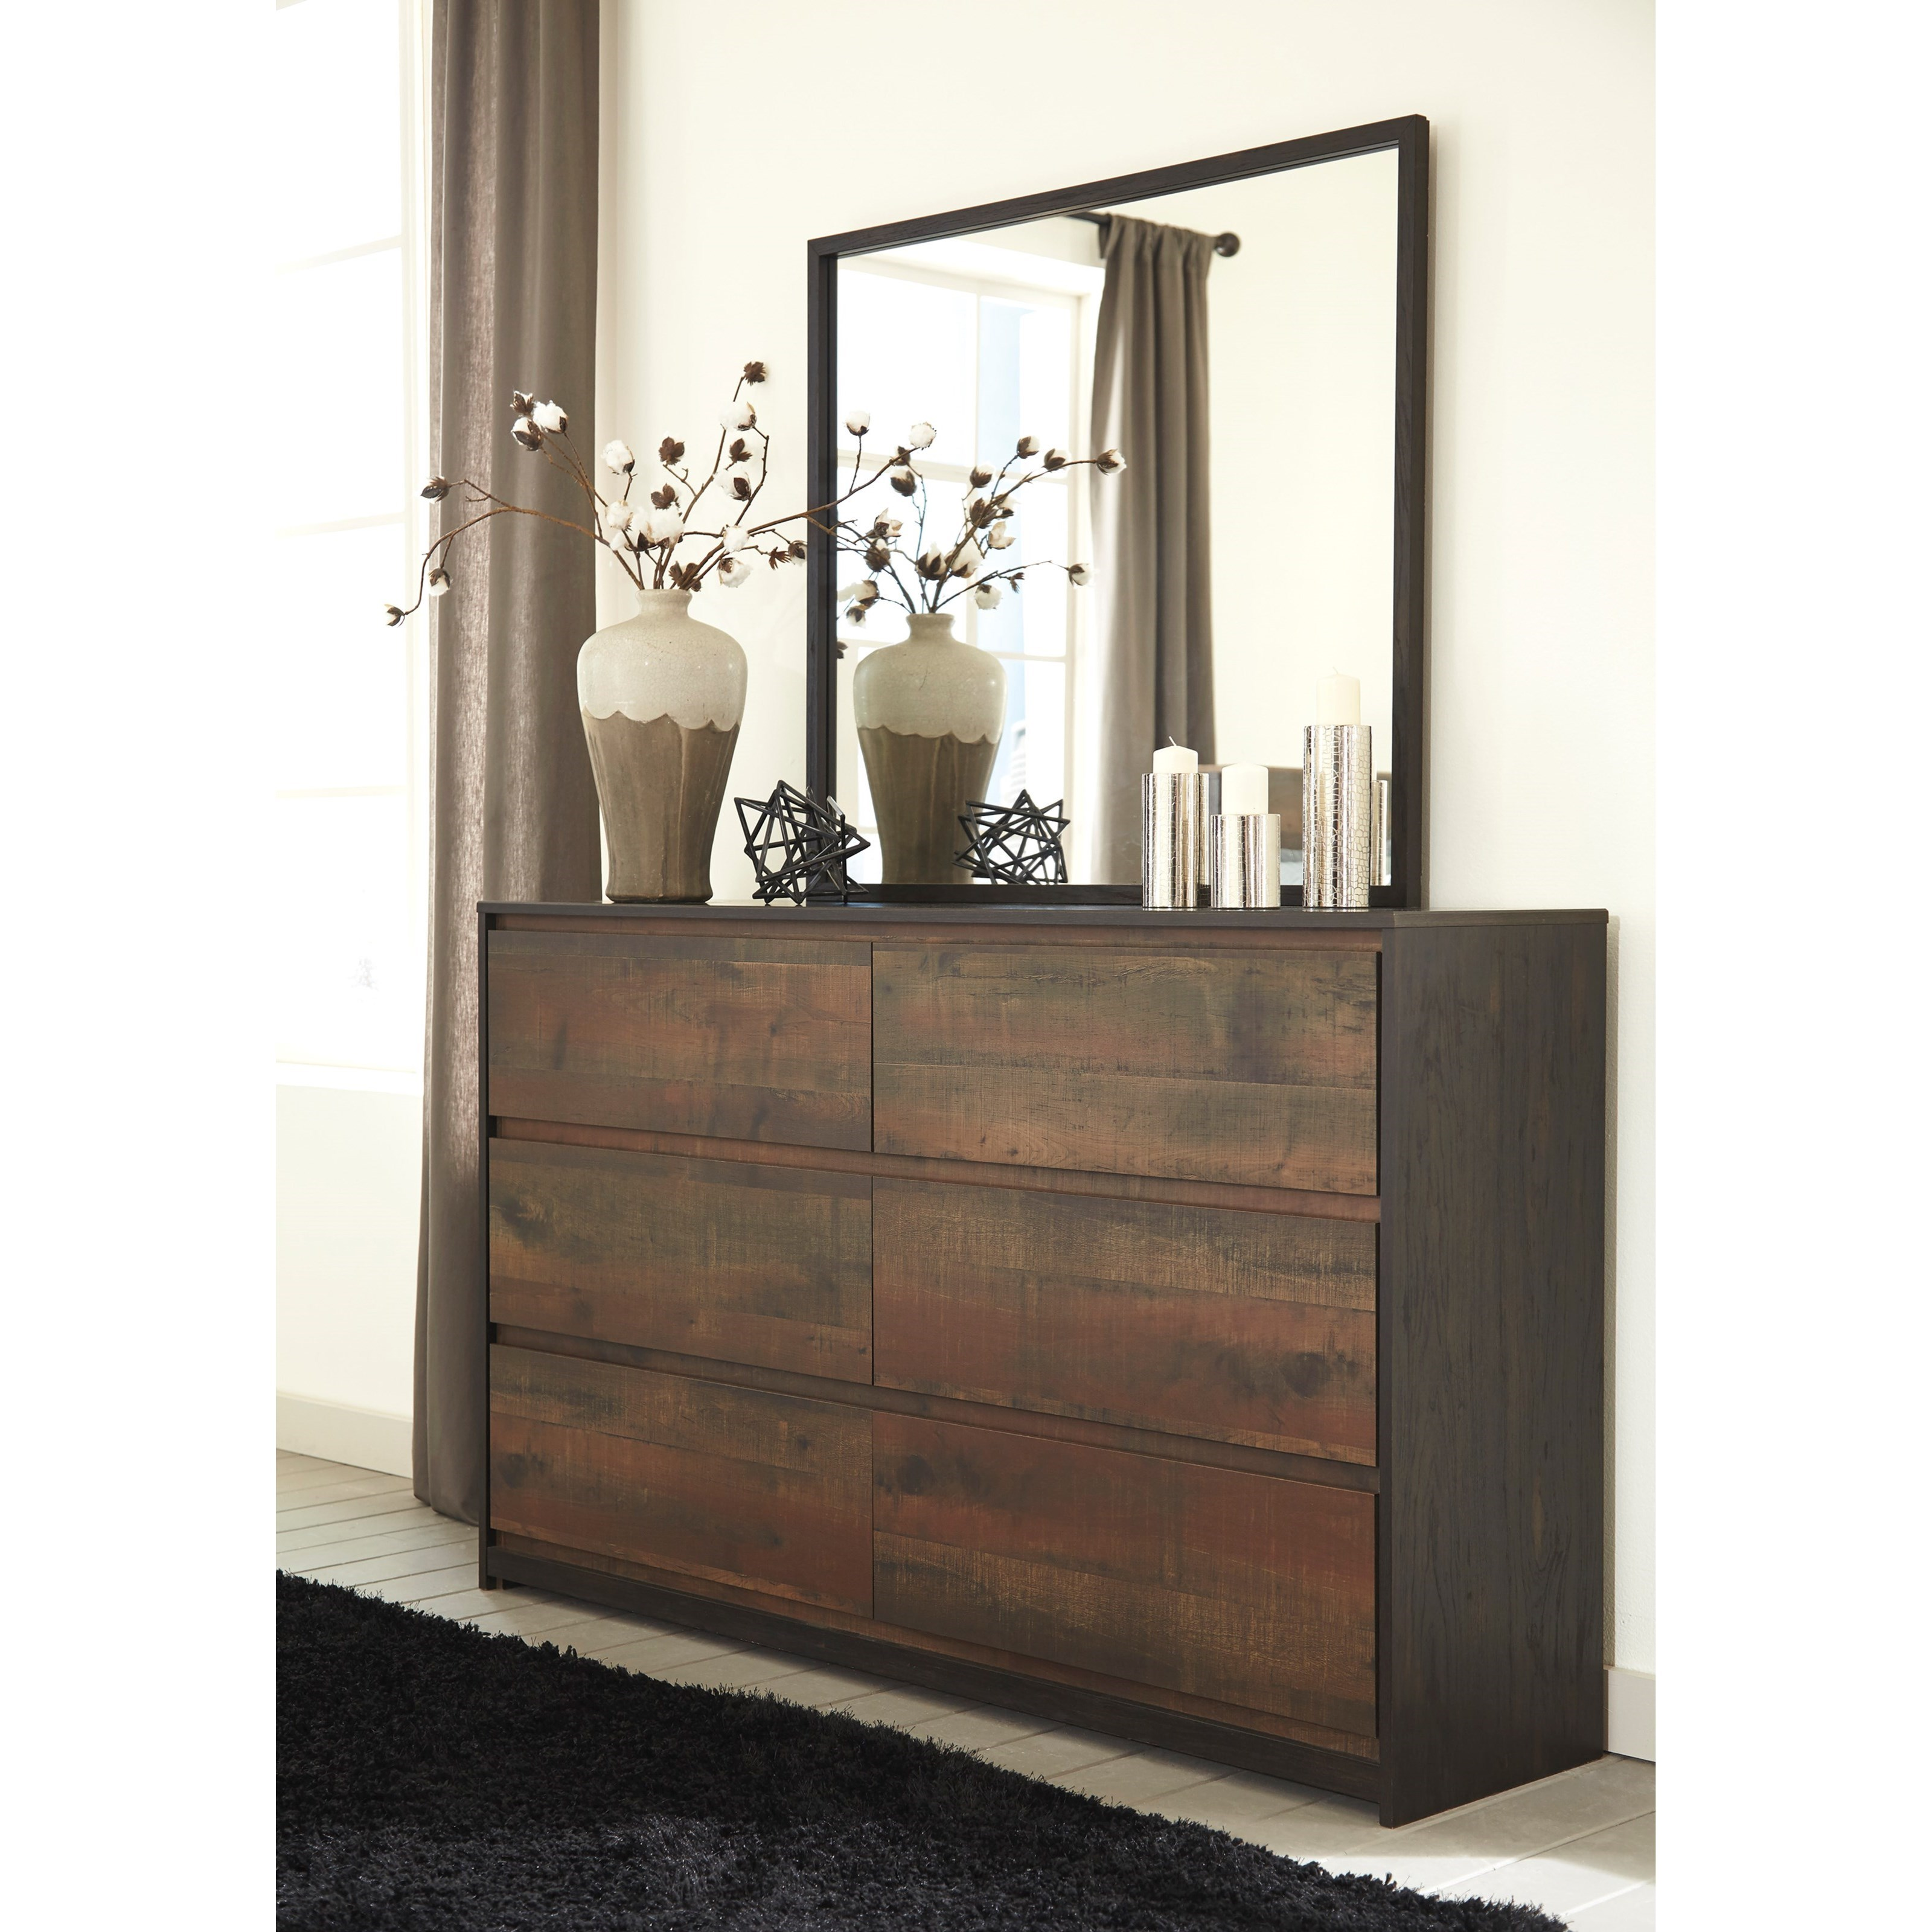 Signature Design By Ashley Windlore Modern Rustic Dresser Amp Bedroom Mirror Royal Furniture